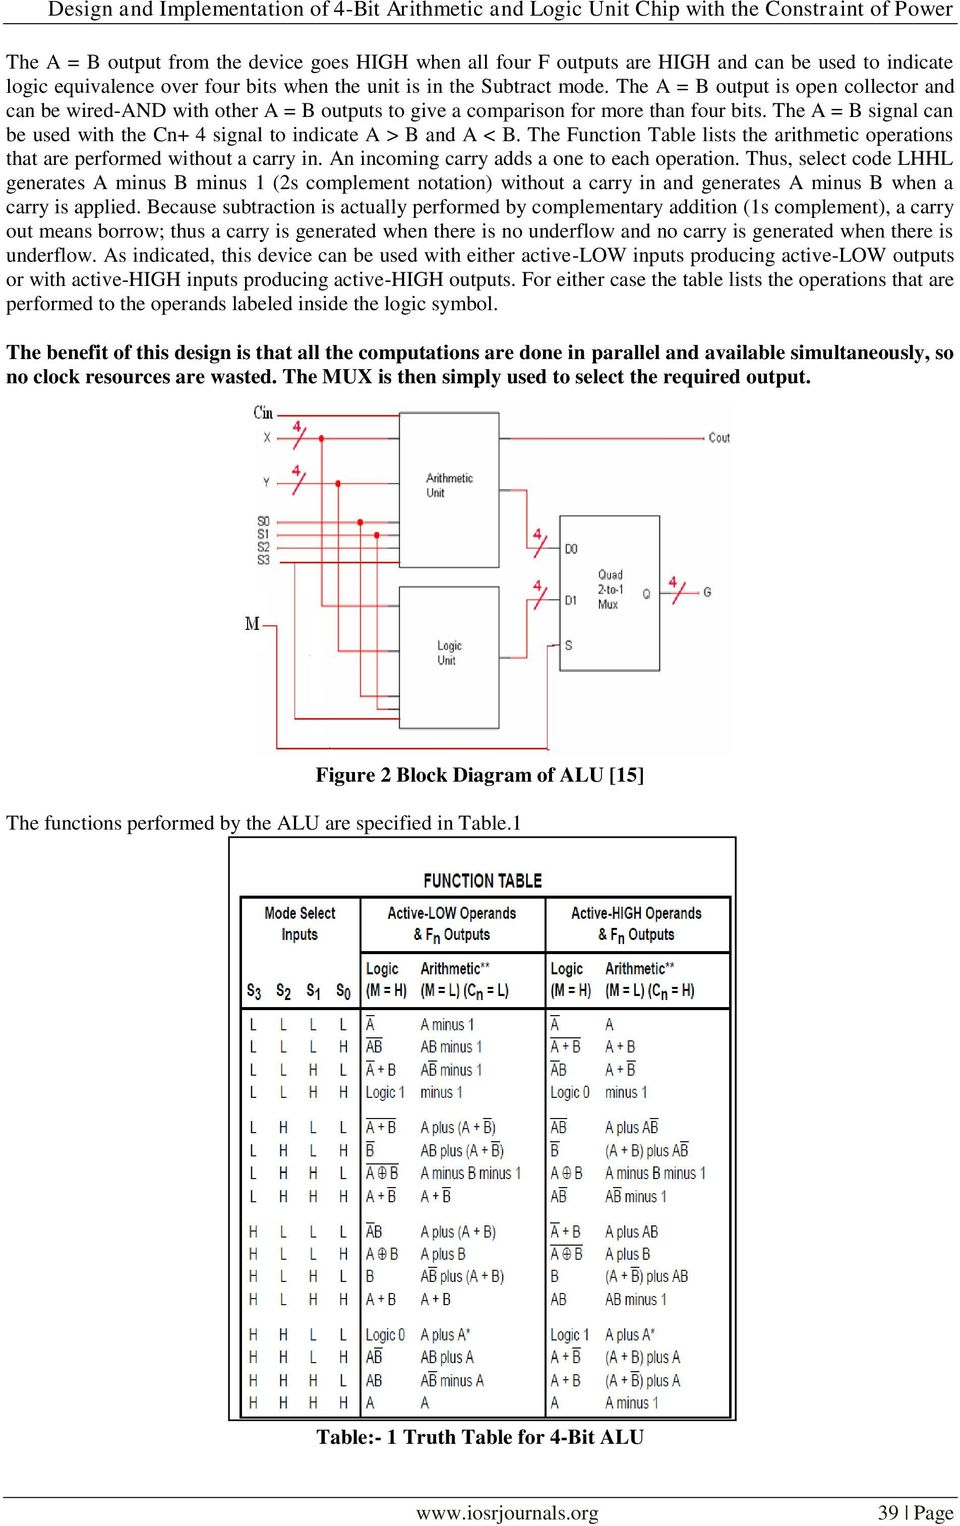 Design And Implementation Of 4 Bit Arithmetic Logic Unit Chip 1 Alu Block Diagram The A B Signal Can Be Used With Cn To Indicate